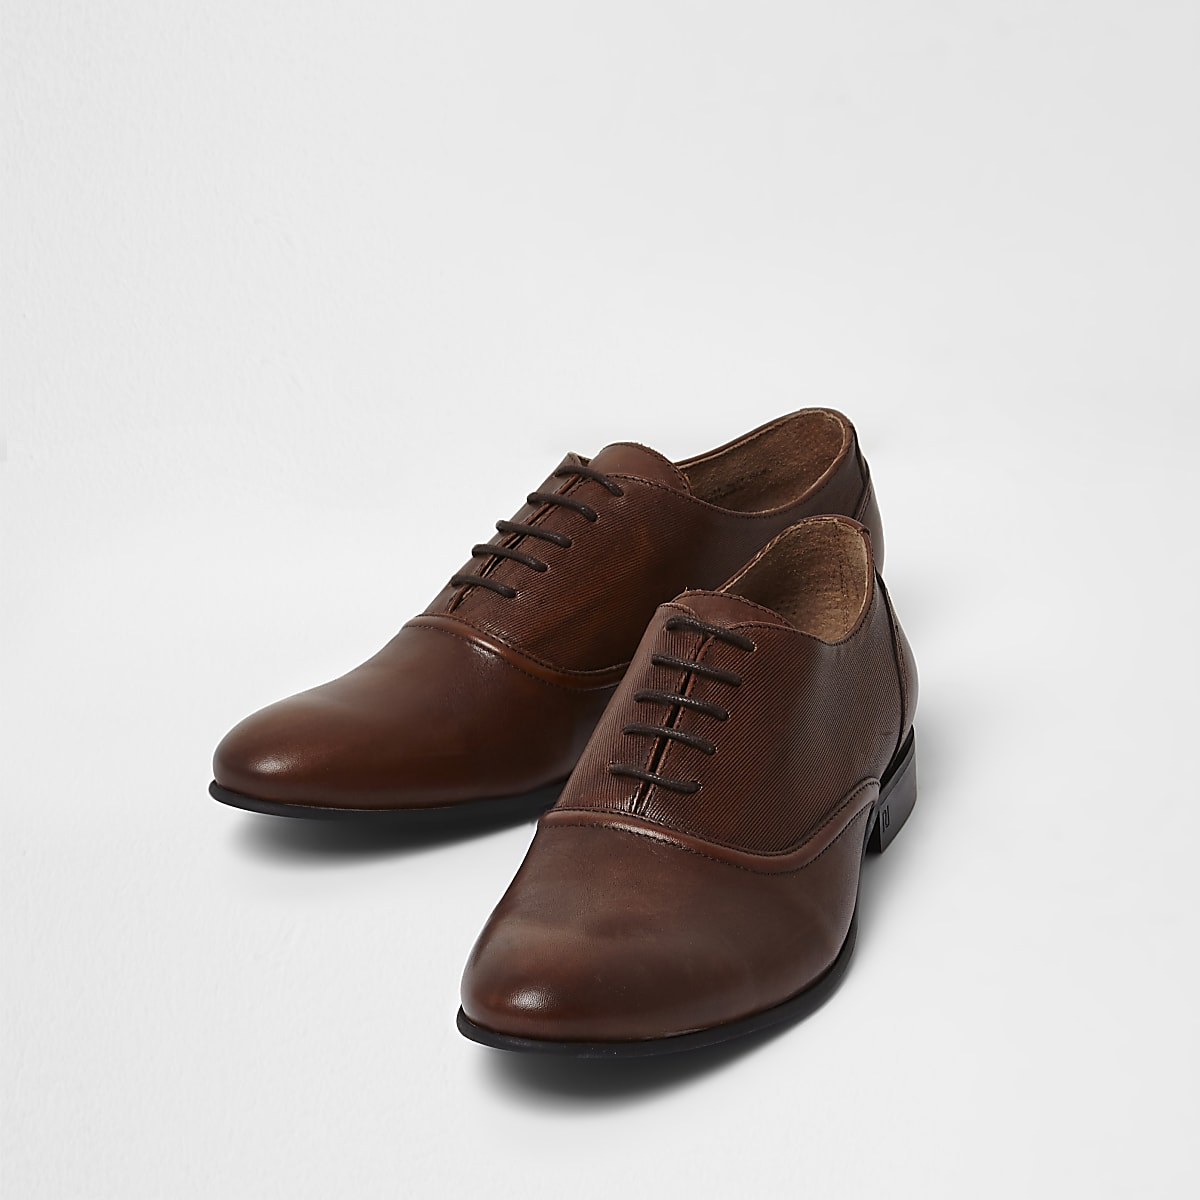 Tan leather lace-up Oxford shoes